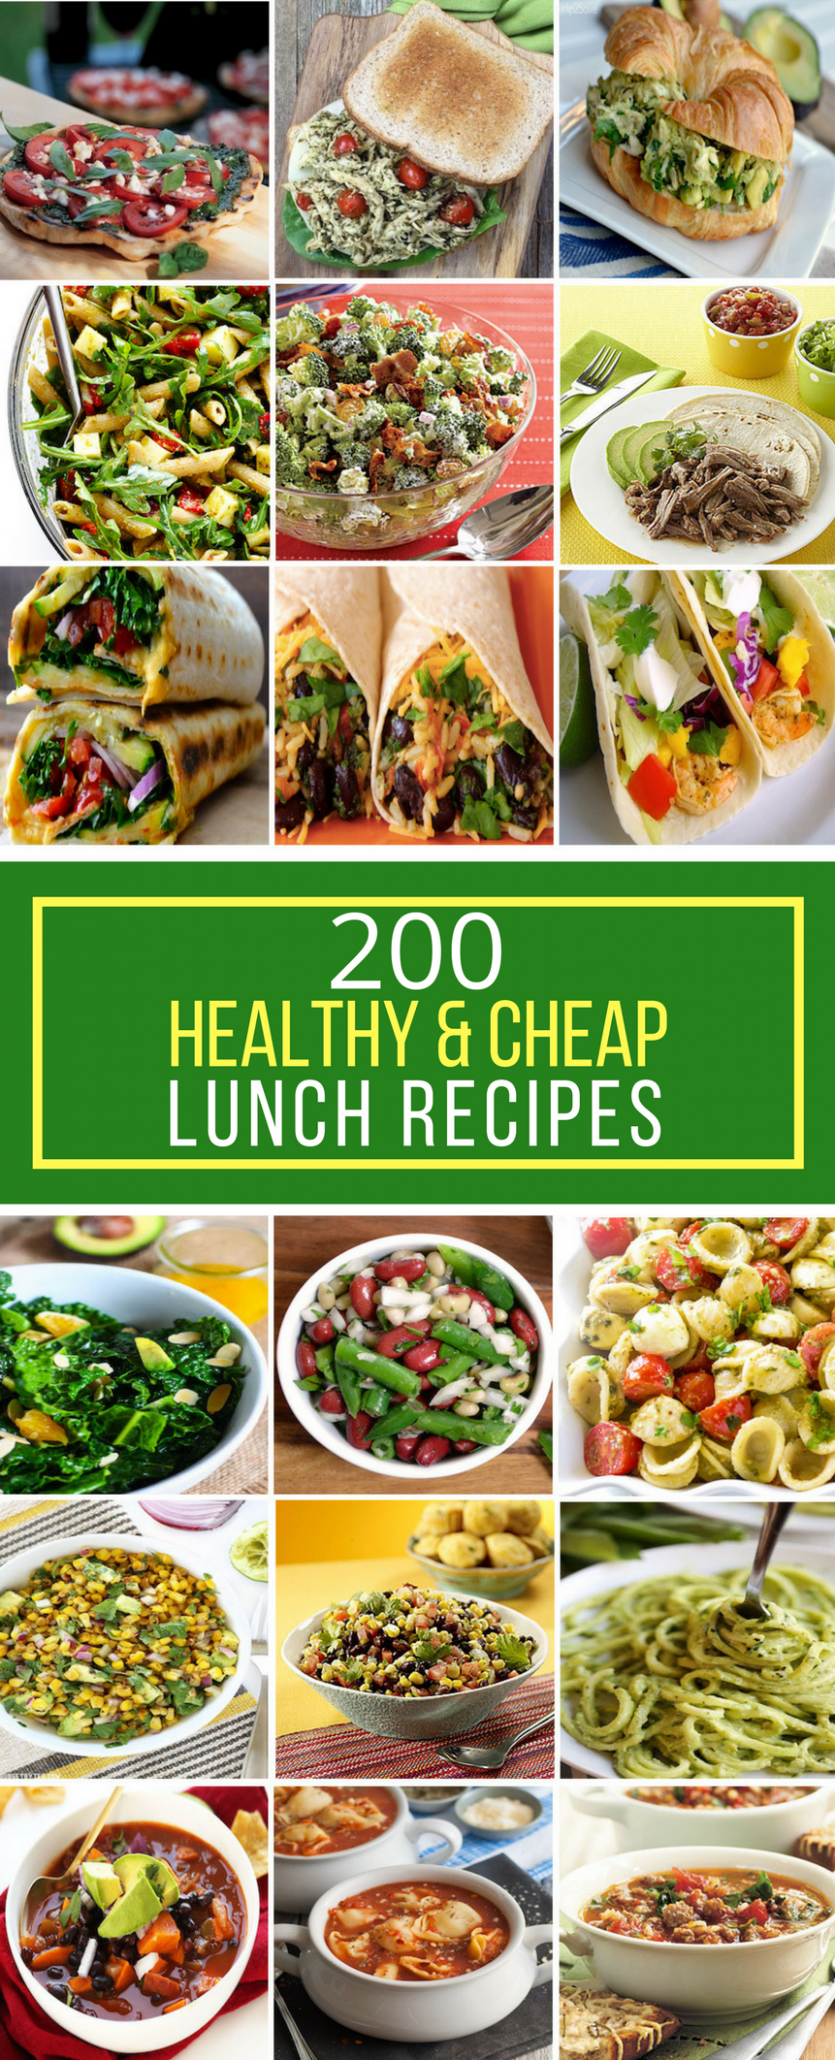 15 Healthy & Cheap Lunch Recipes - Prudent Penny Pincher - recipes healthy budget dinner